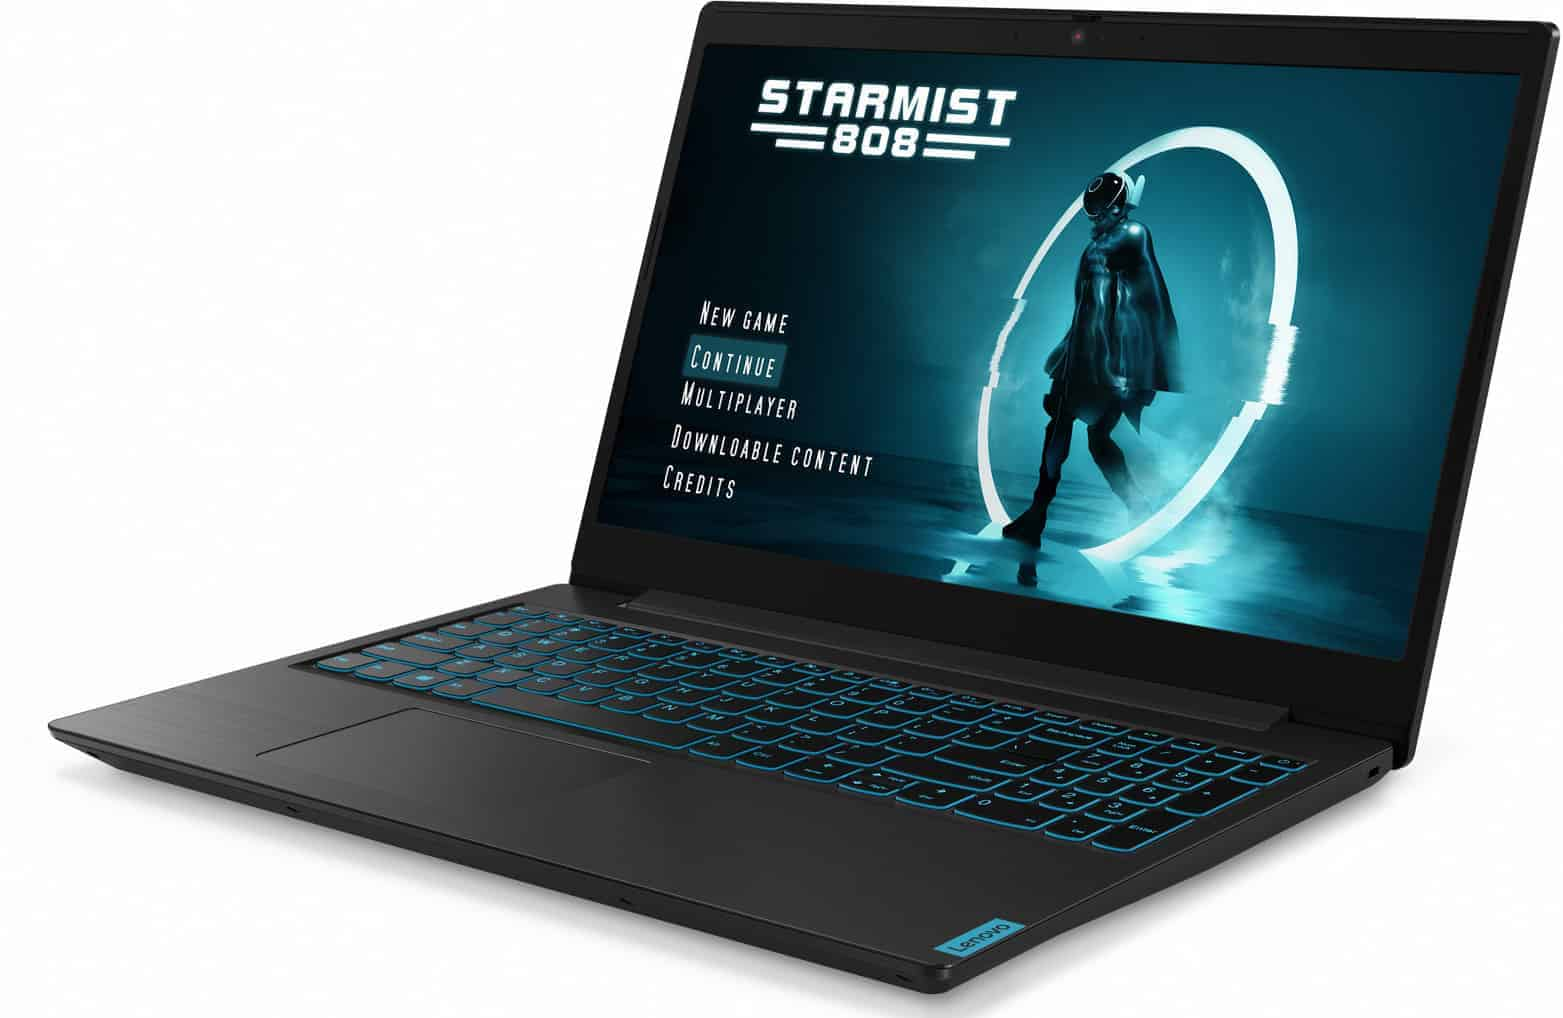 Beste Budget Gaming laptop - lenovo ideapad l340